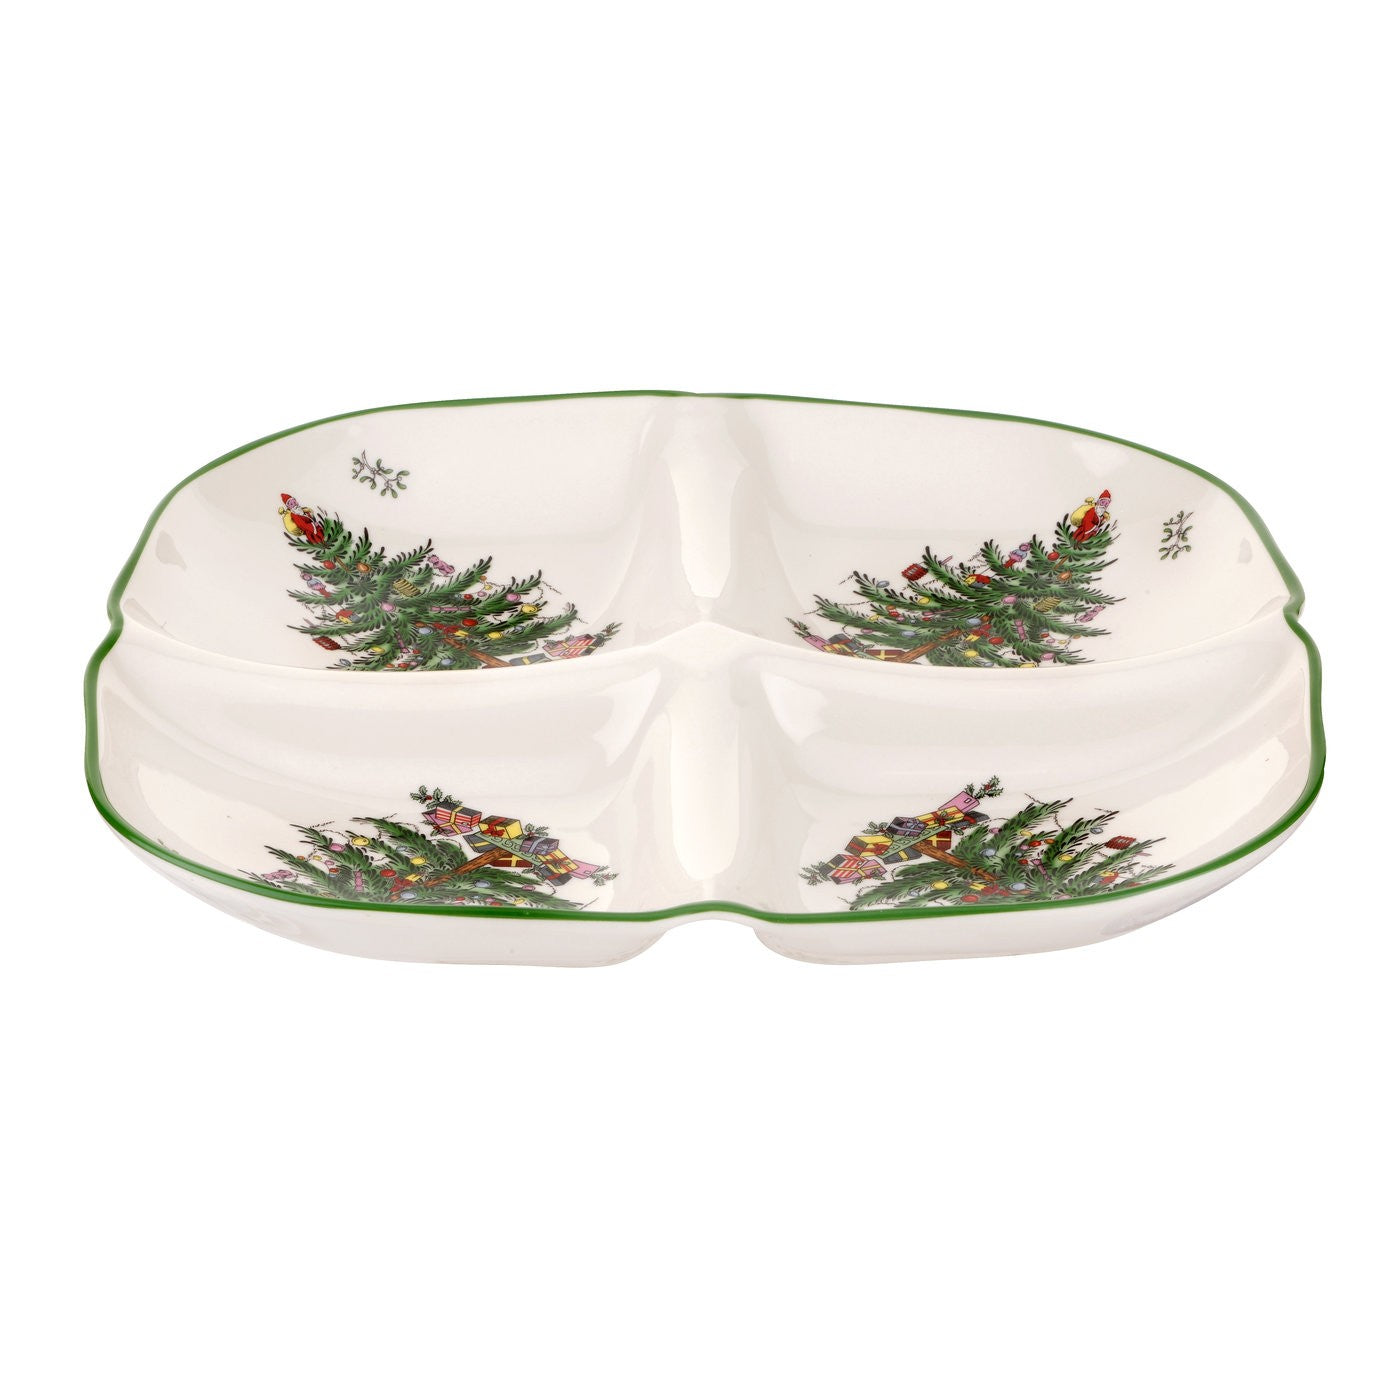 Spode Christmas Tree Sculpted 4 Section Tray